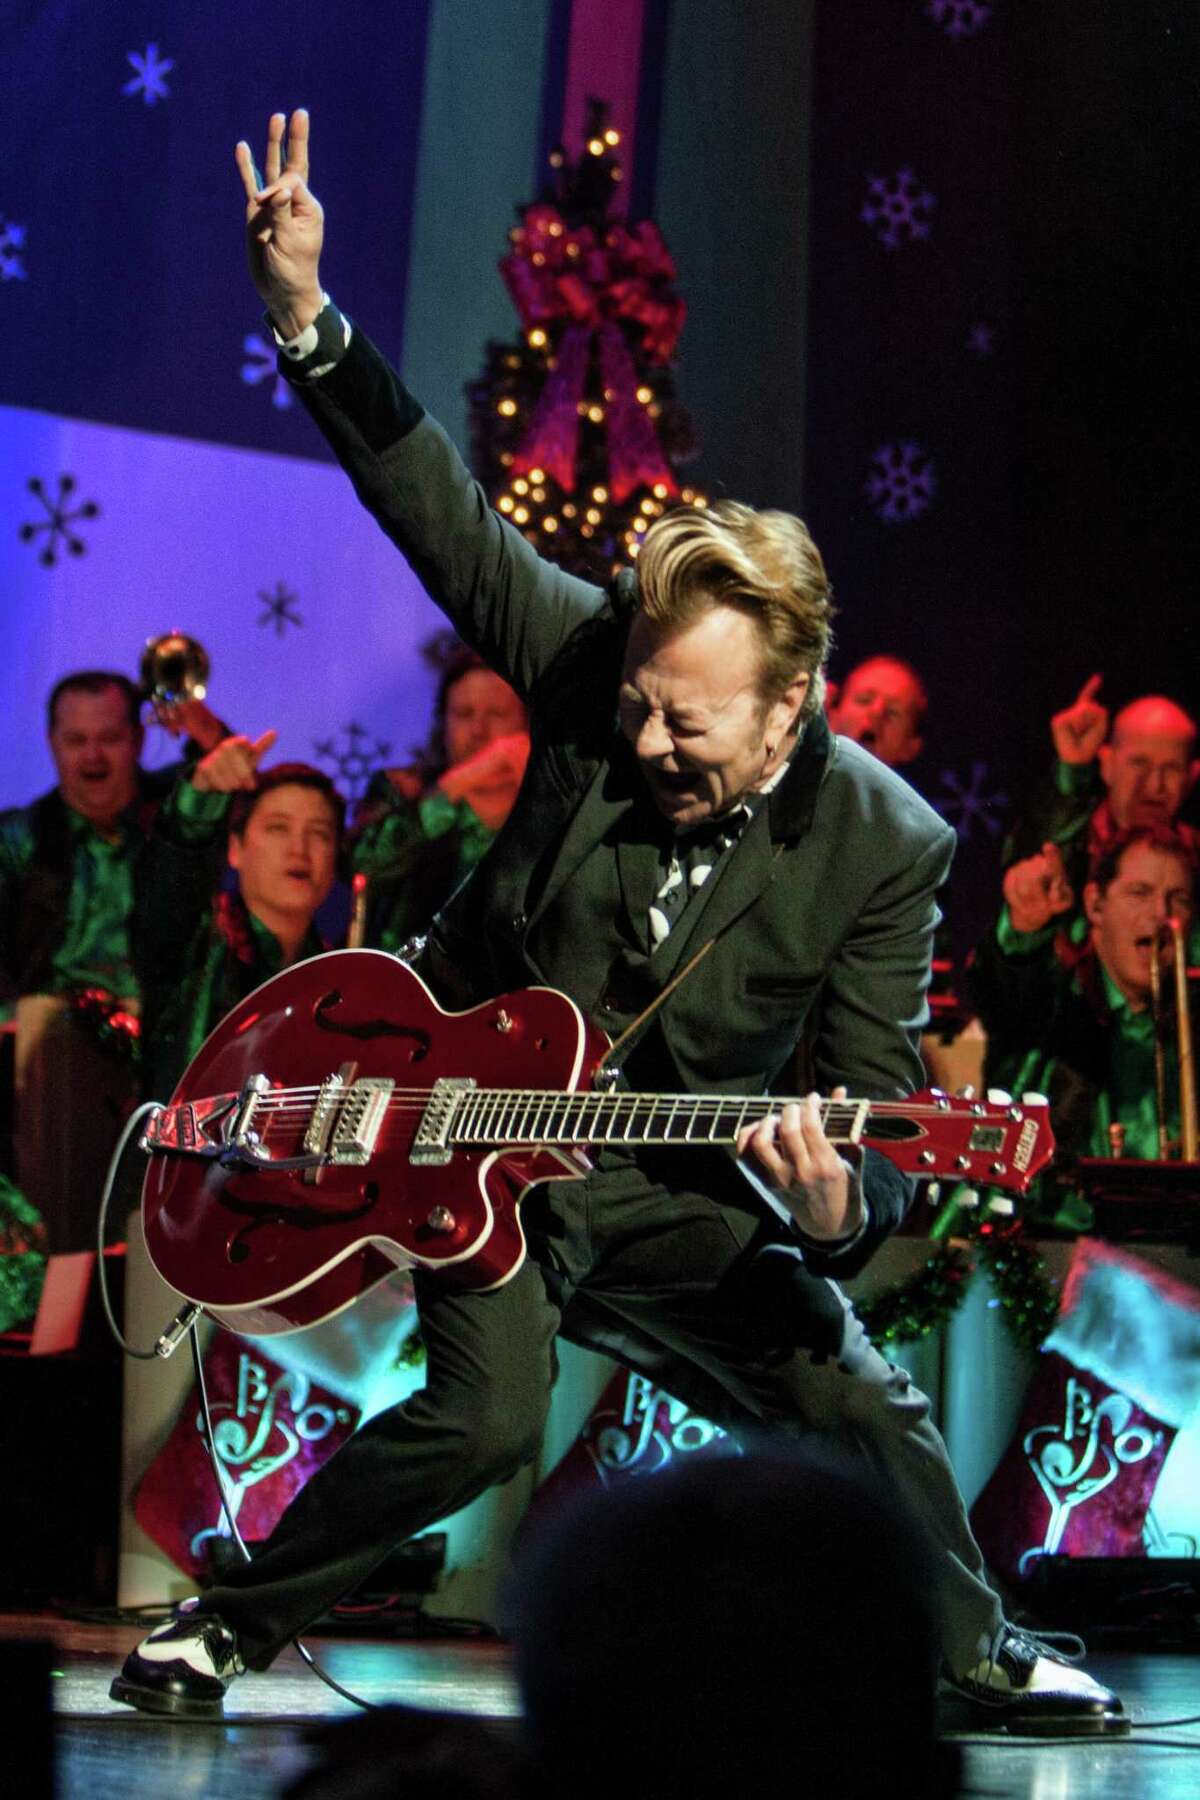 Brian Setzer puts a lively touch on another holiday tune.